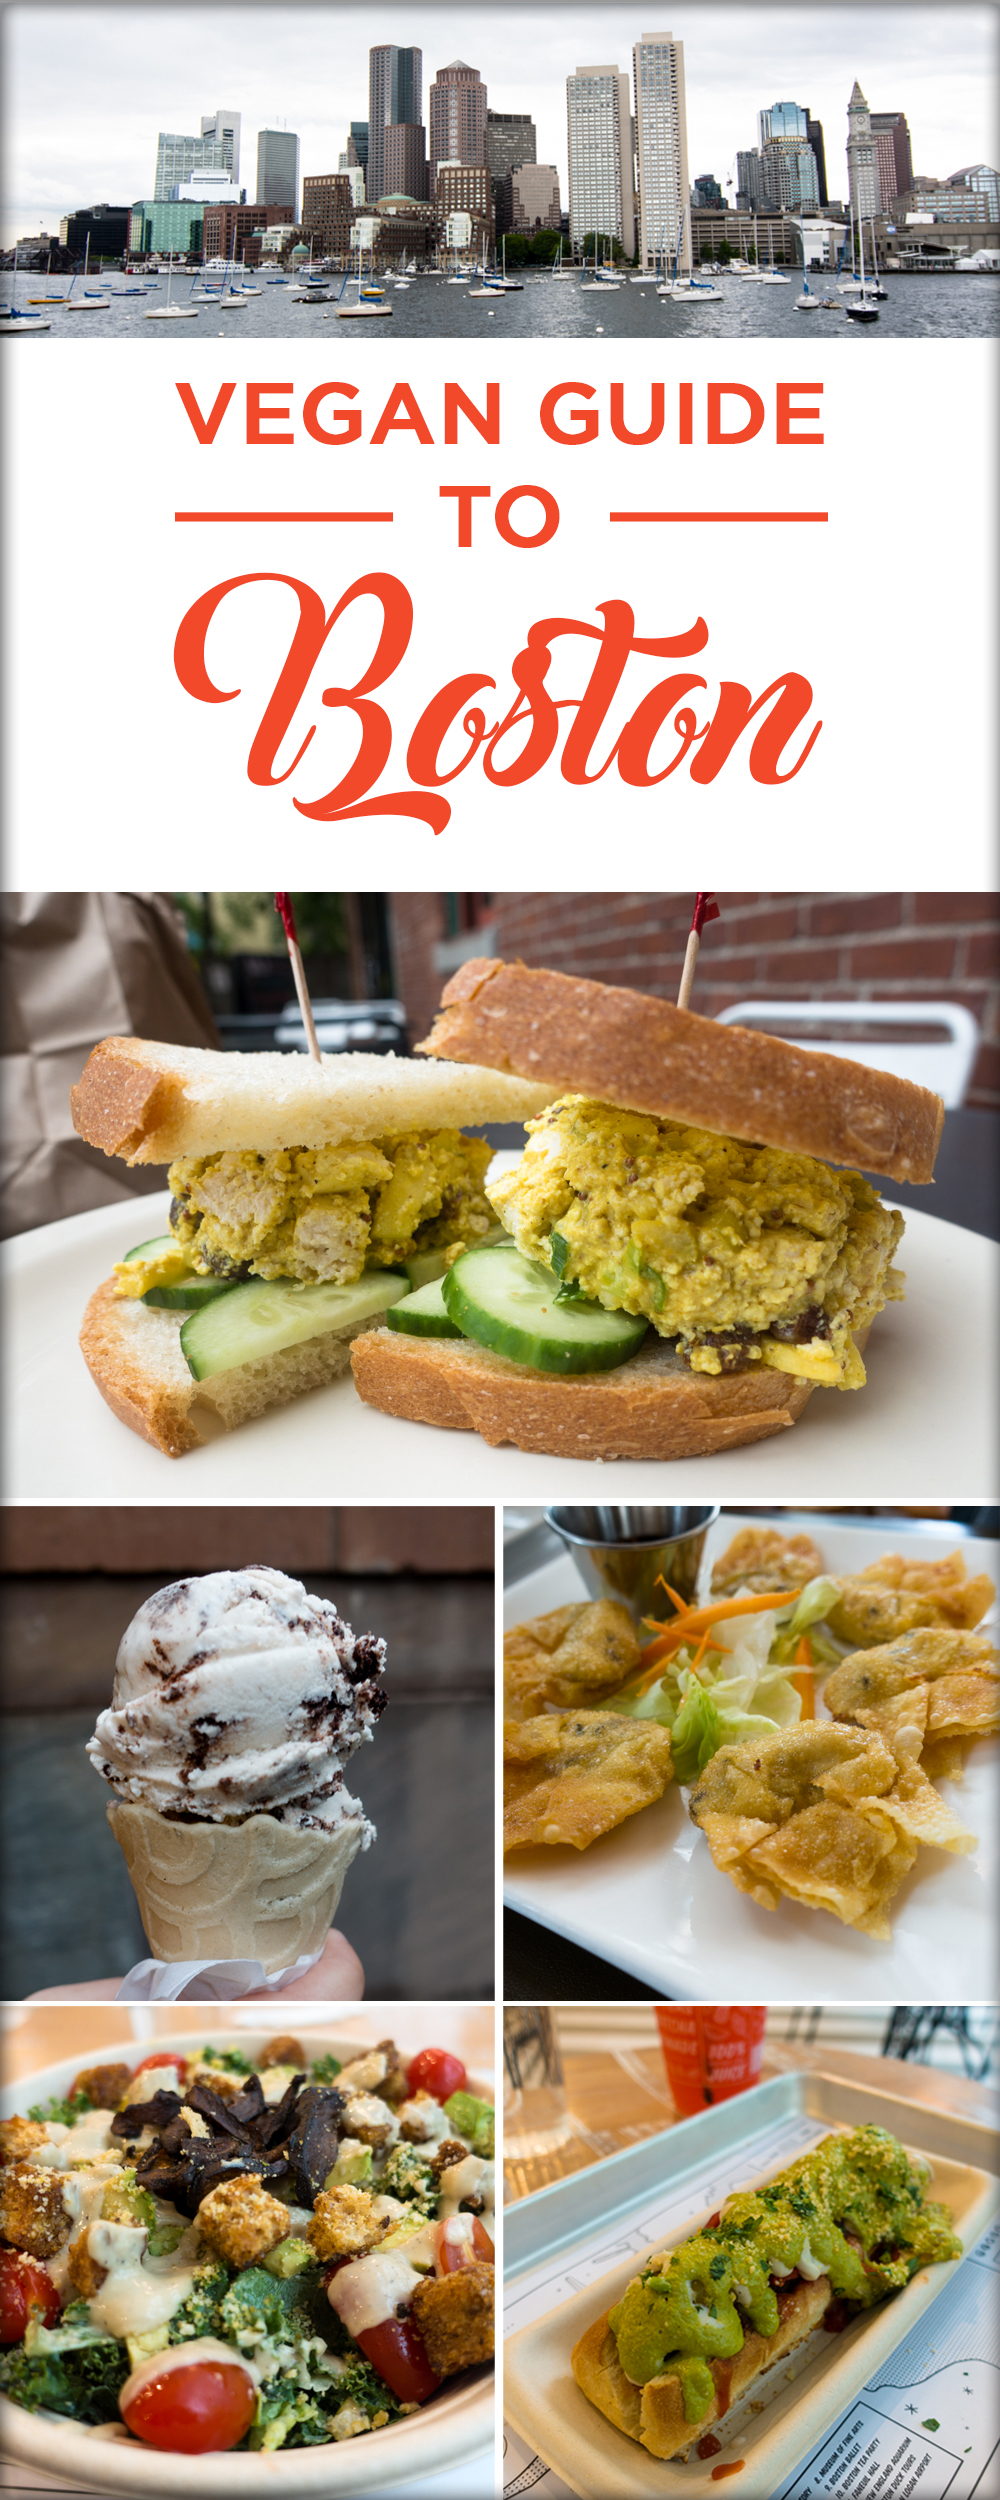 Vegan Guide to Boston: Where to find the best Vegan food! #vegan #travel #boston